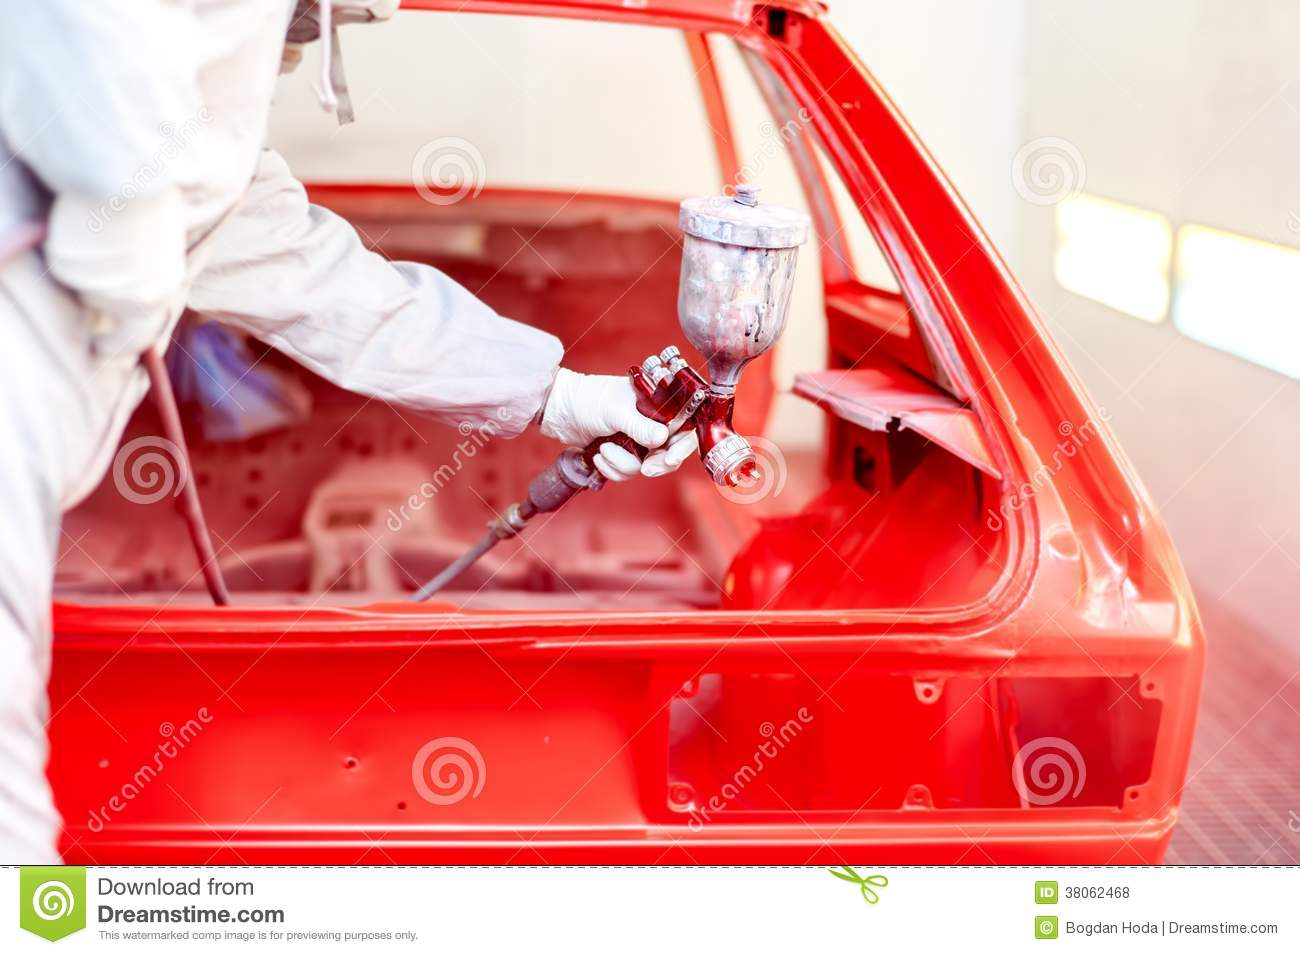 close up of spray paint gun with worker working on a red car royalty free stock photos image. Black Bedroom Furniture Sets. Home Design Ideas